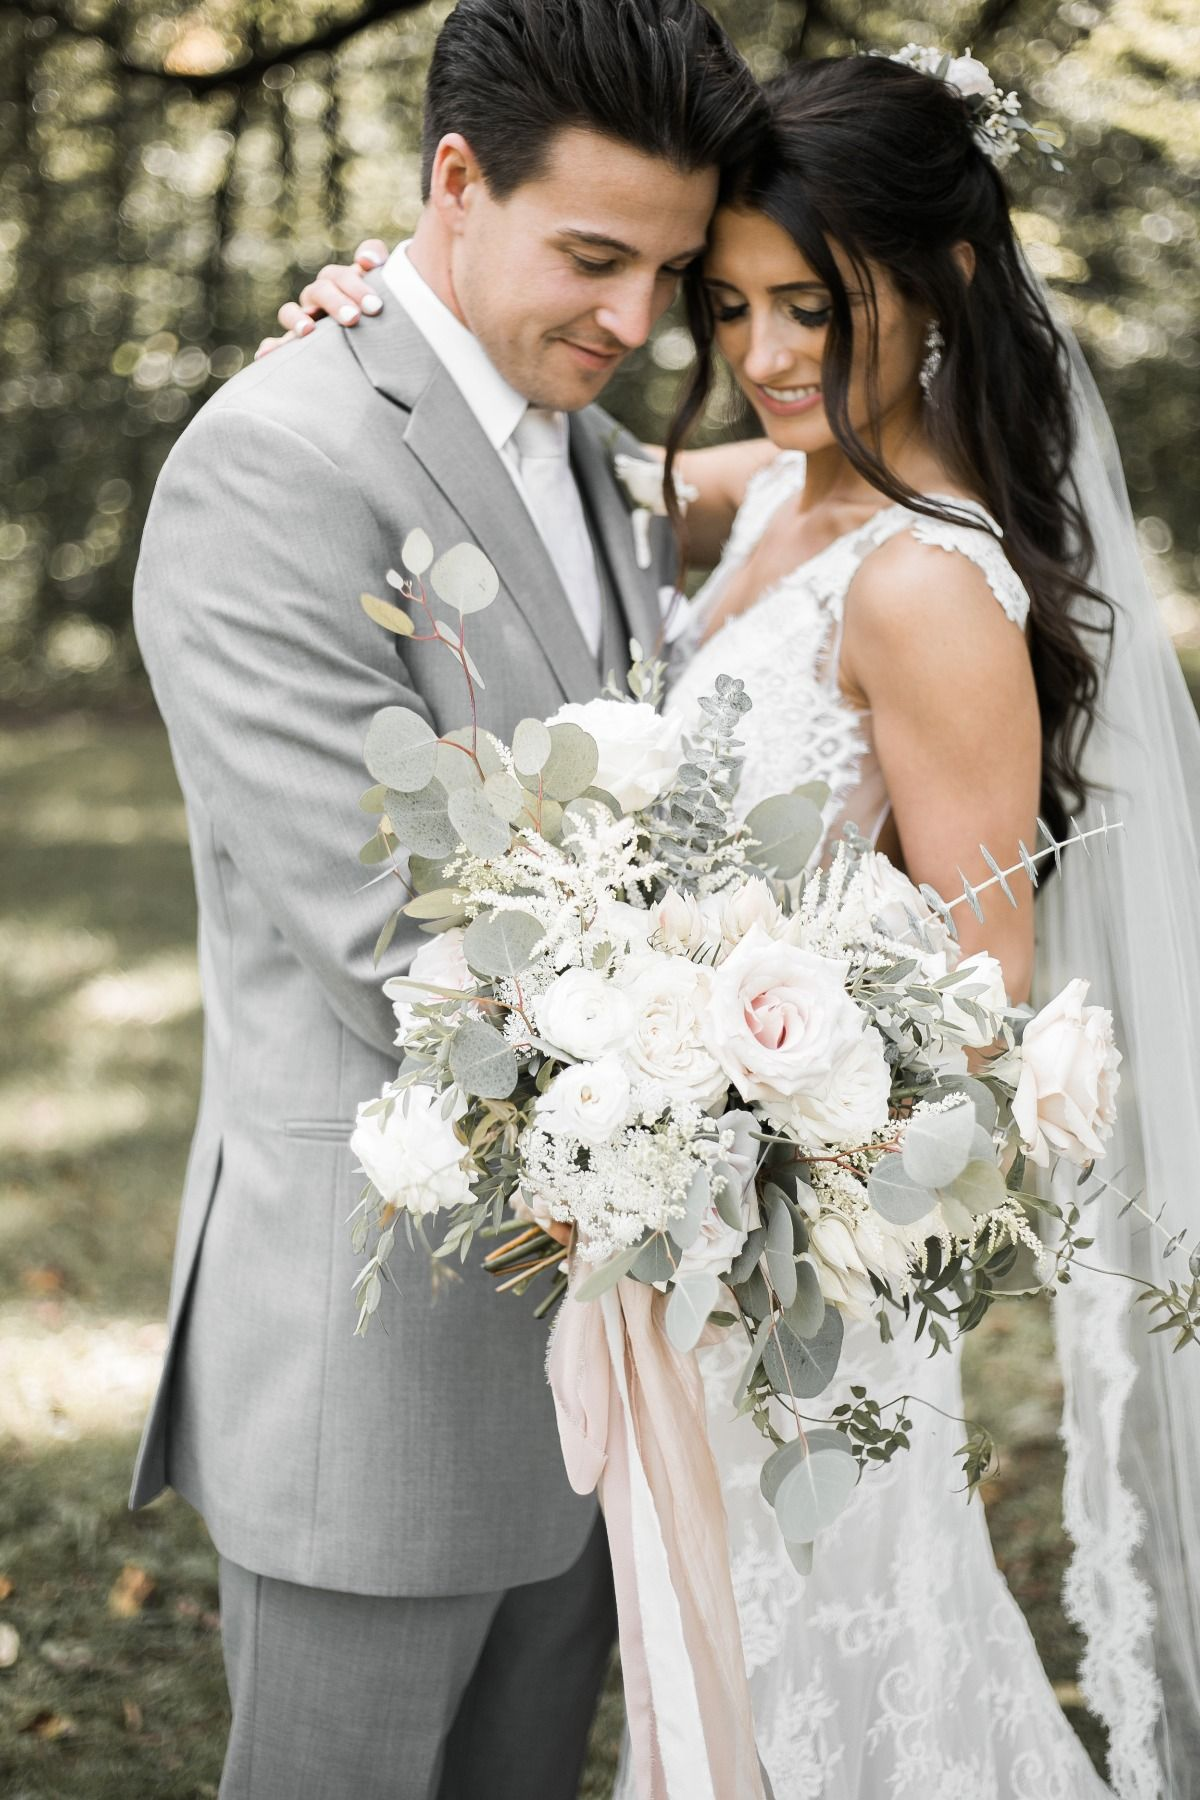 This WhiteWashed Organic Chic Wedding is What Dreams are